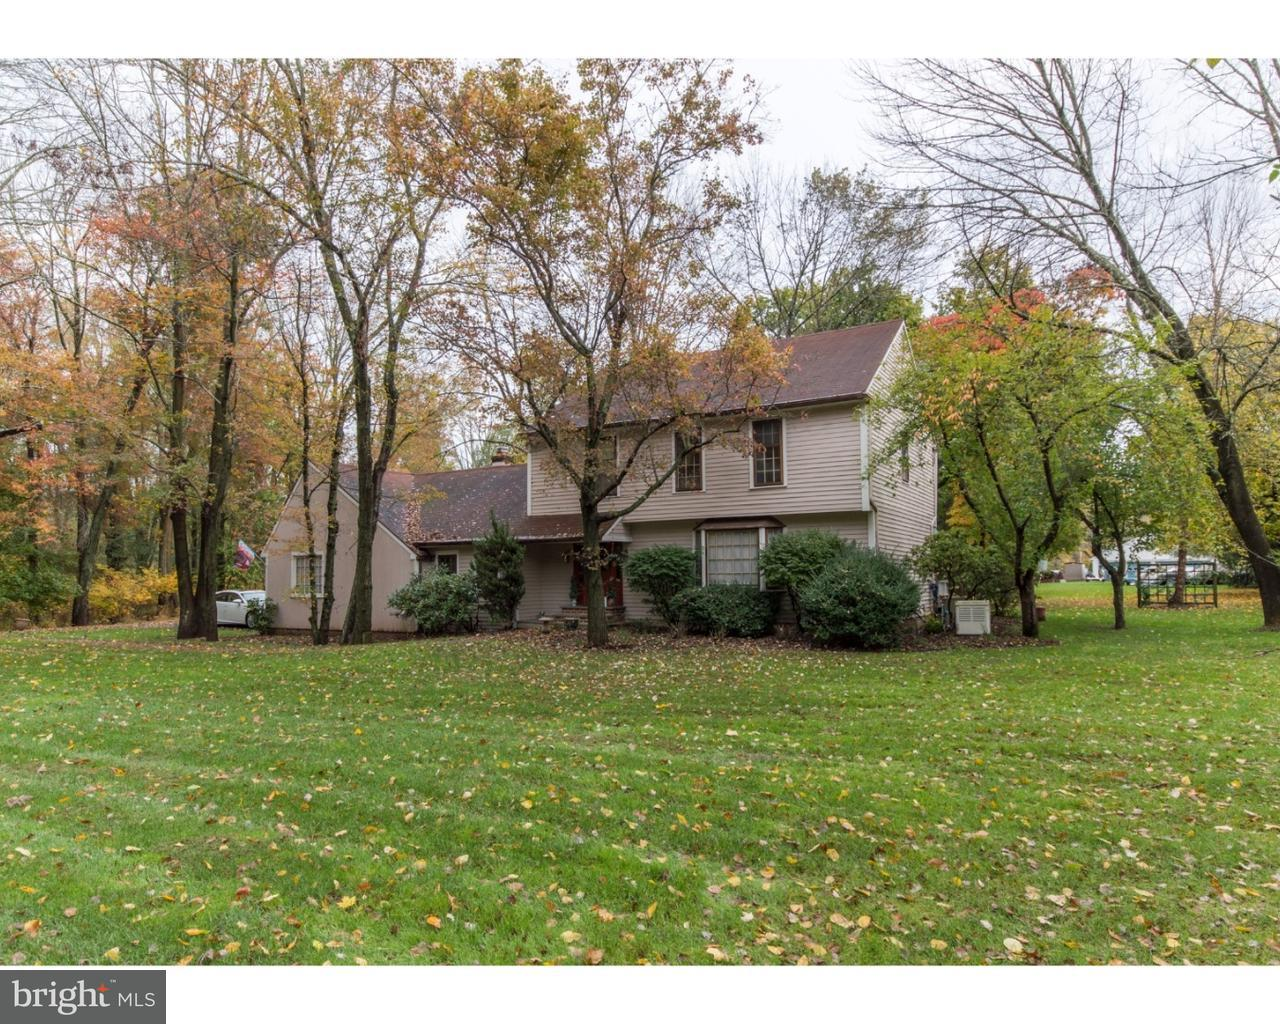 27 MOHAWK AVE, NEW BRITAIN - Listed at $425,000, NEW BRITAIN